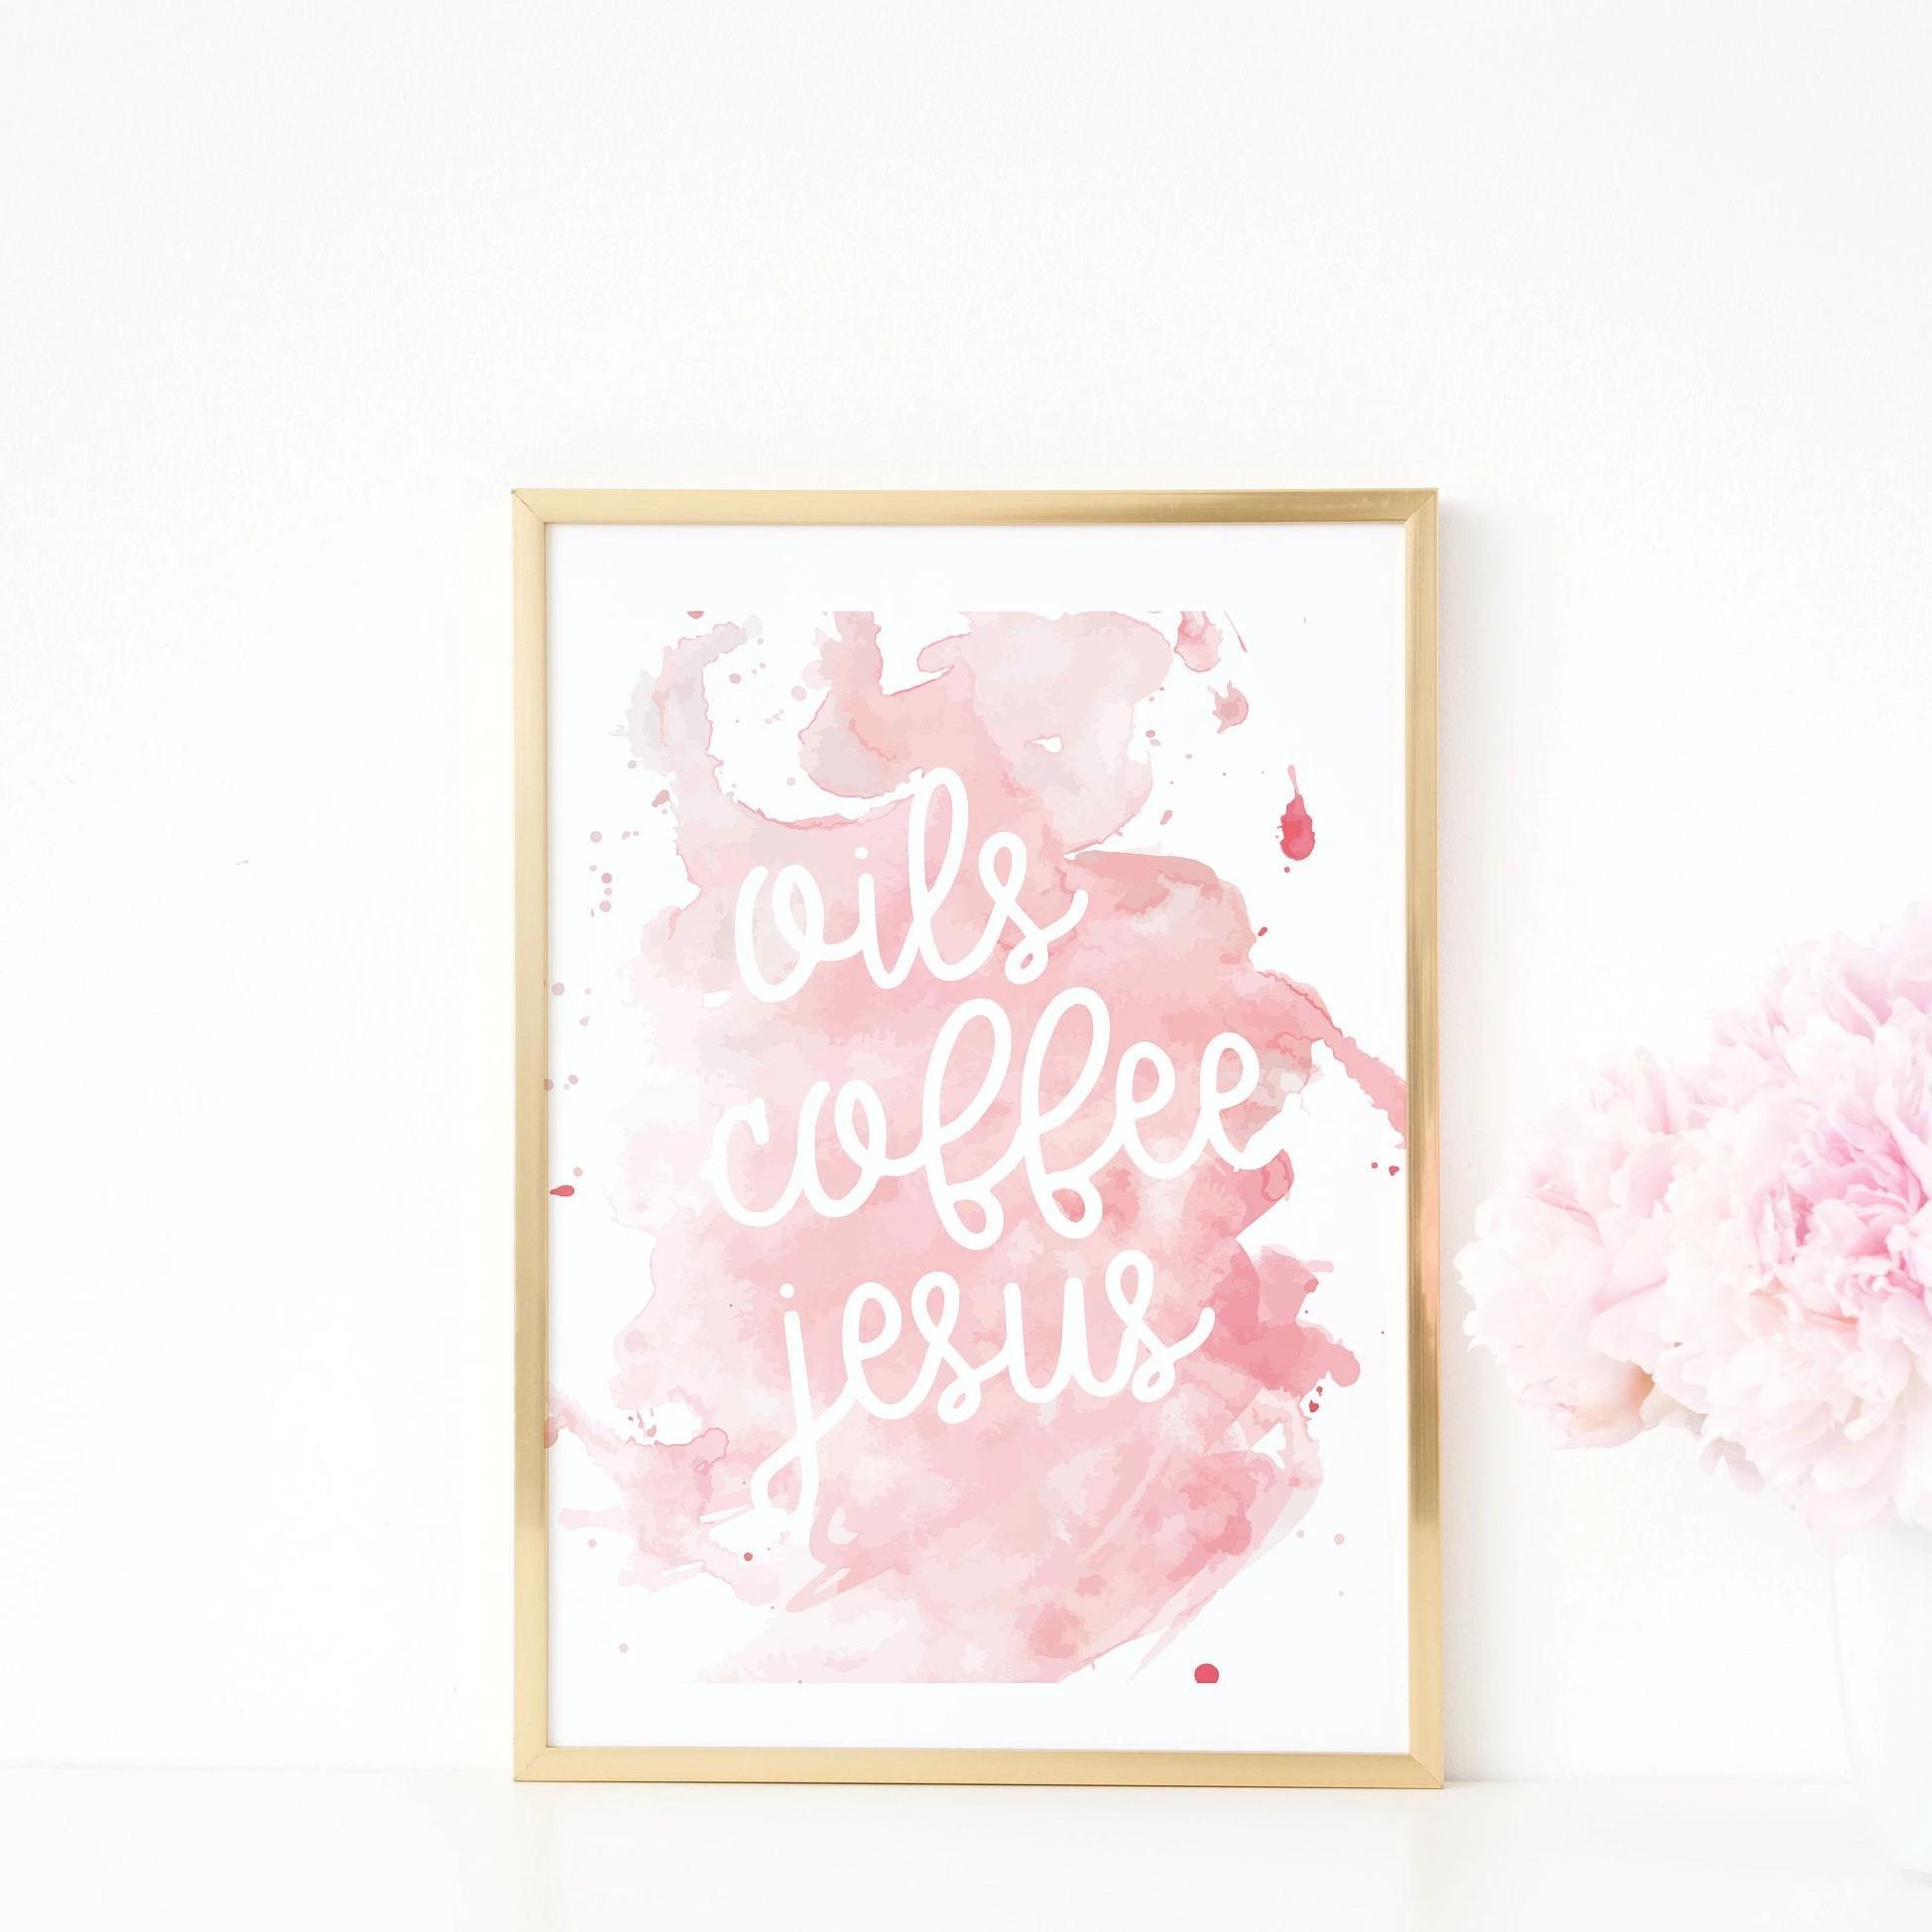 Leanne & Co. Digital Print Oils Coffee Jesus Wall Art